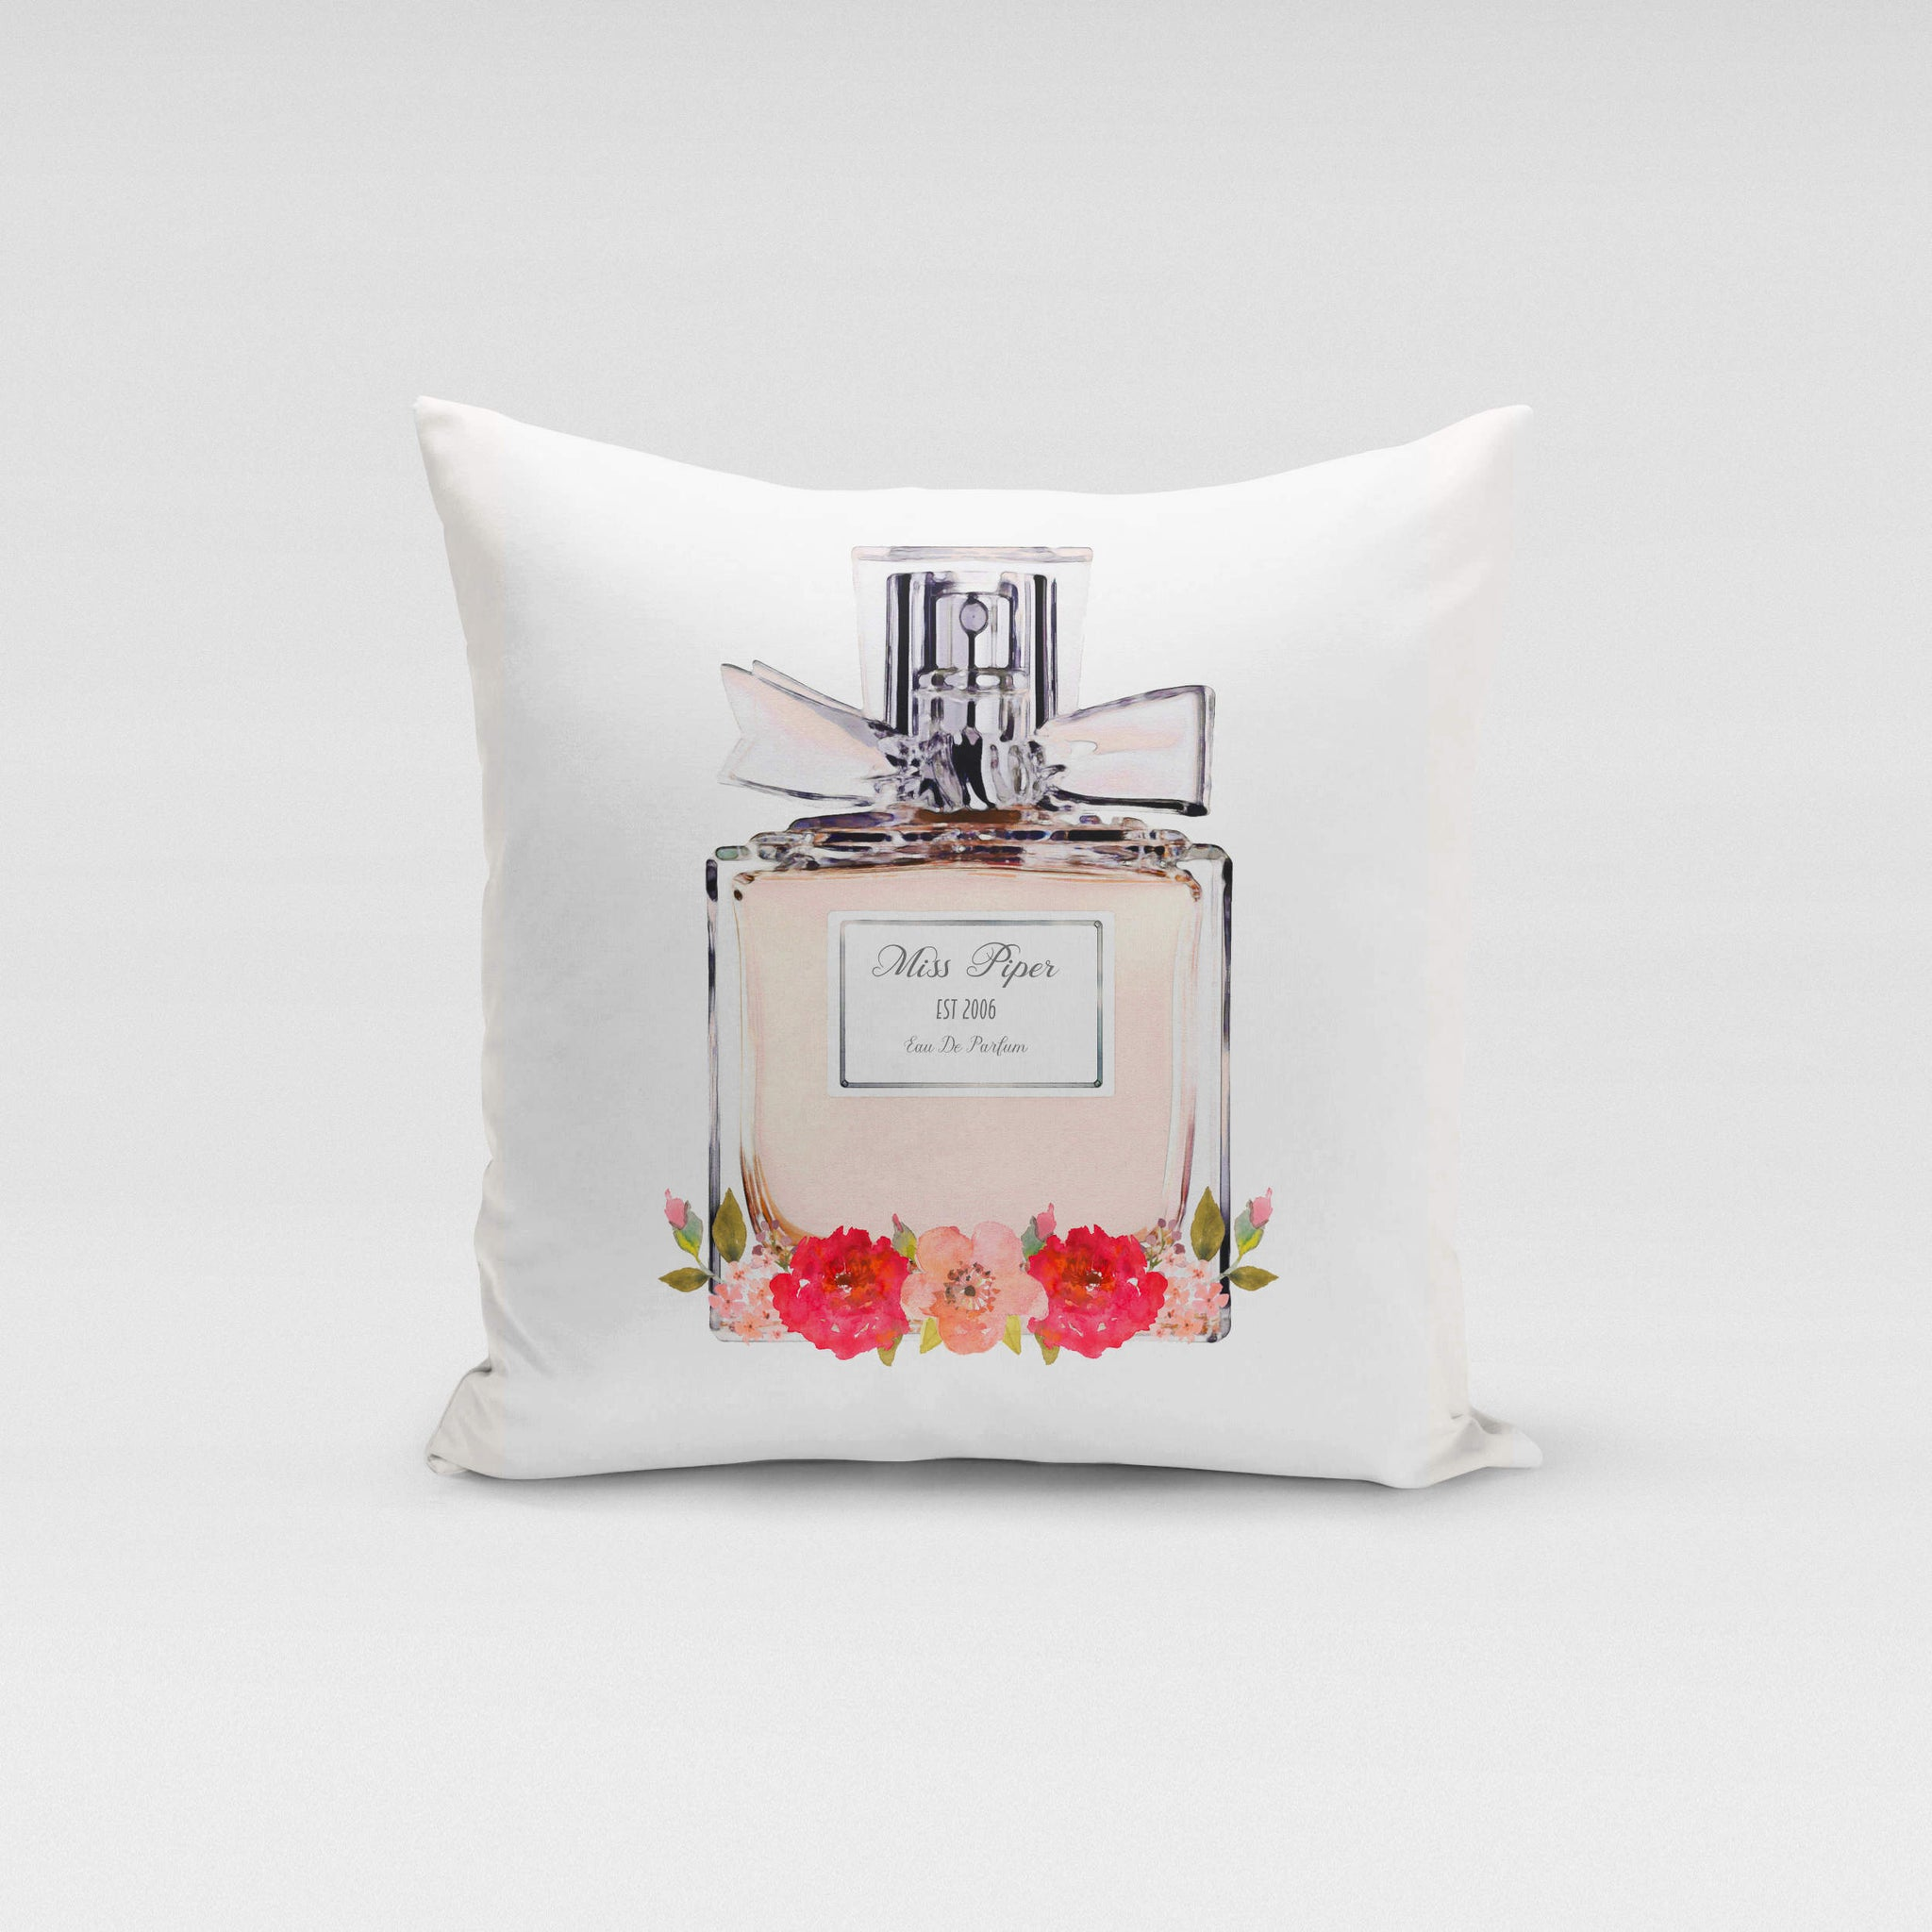 Personalised Cushion Cover Only - Peach Parfum